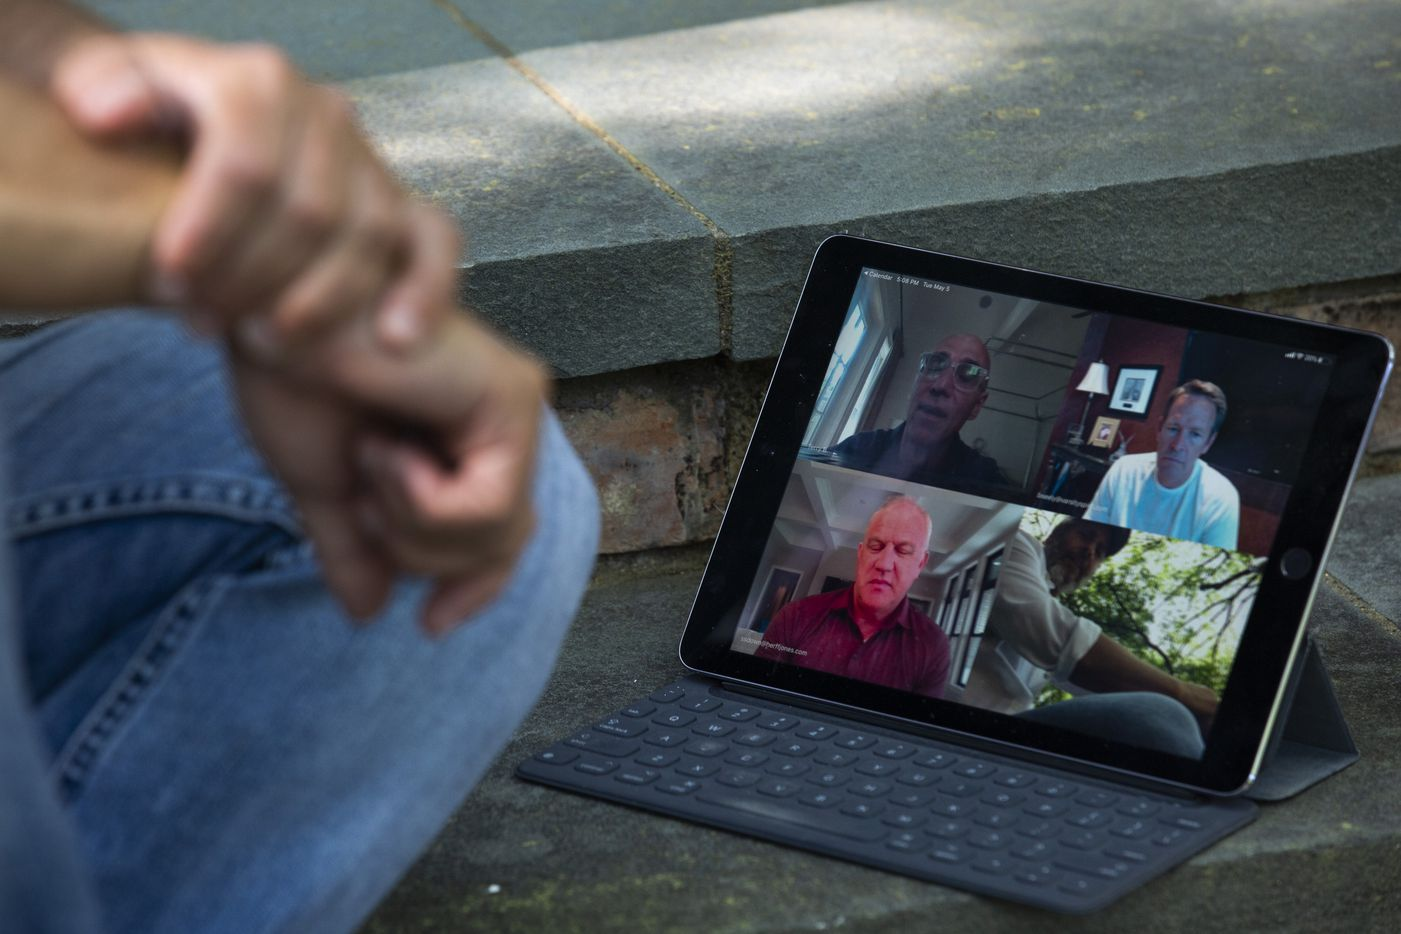 Adam Blumenfeld, CEO of Varsity Brands, participates in a Zoom video conference meeting with colleagues during a portrait session outside of his home in Dallas on May 5.